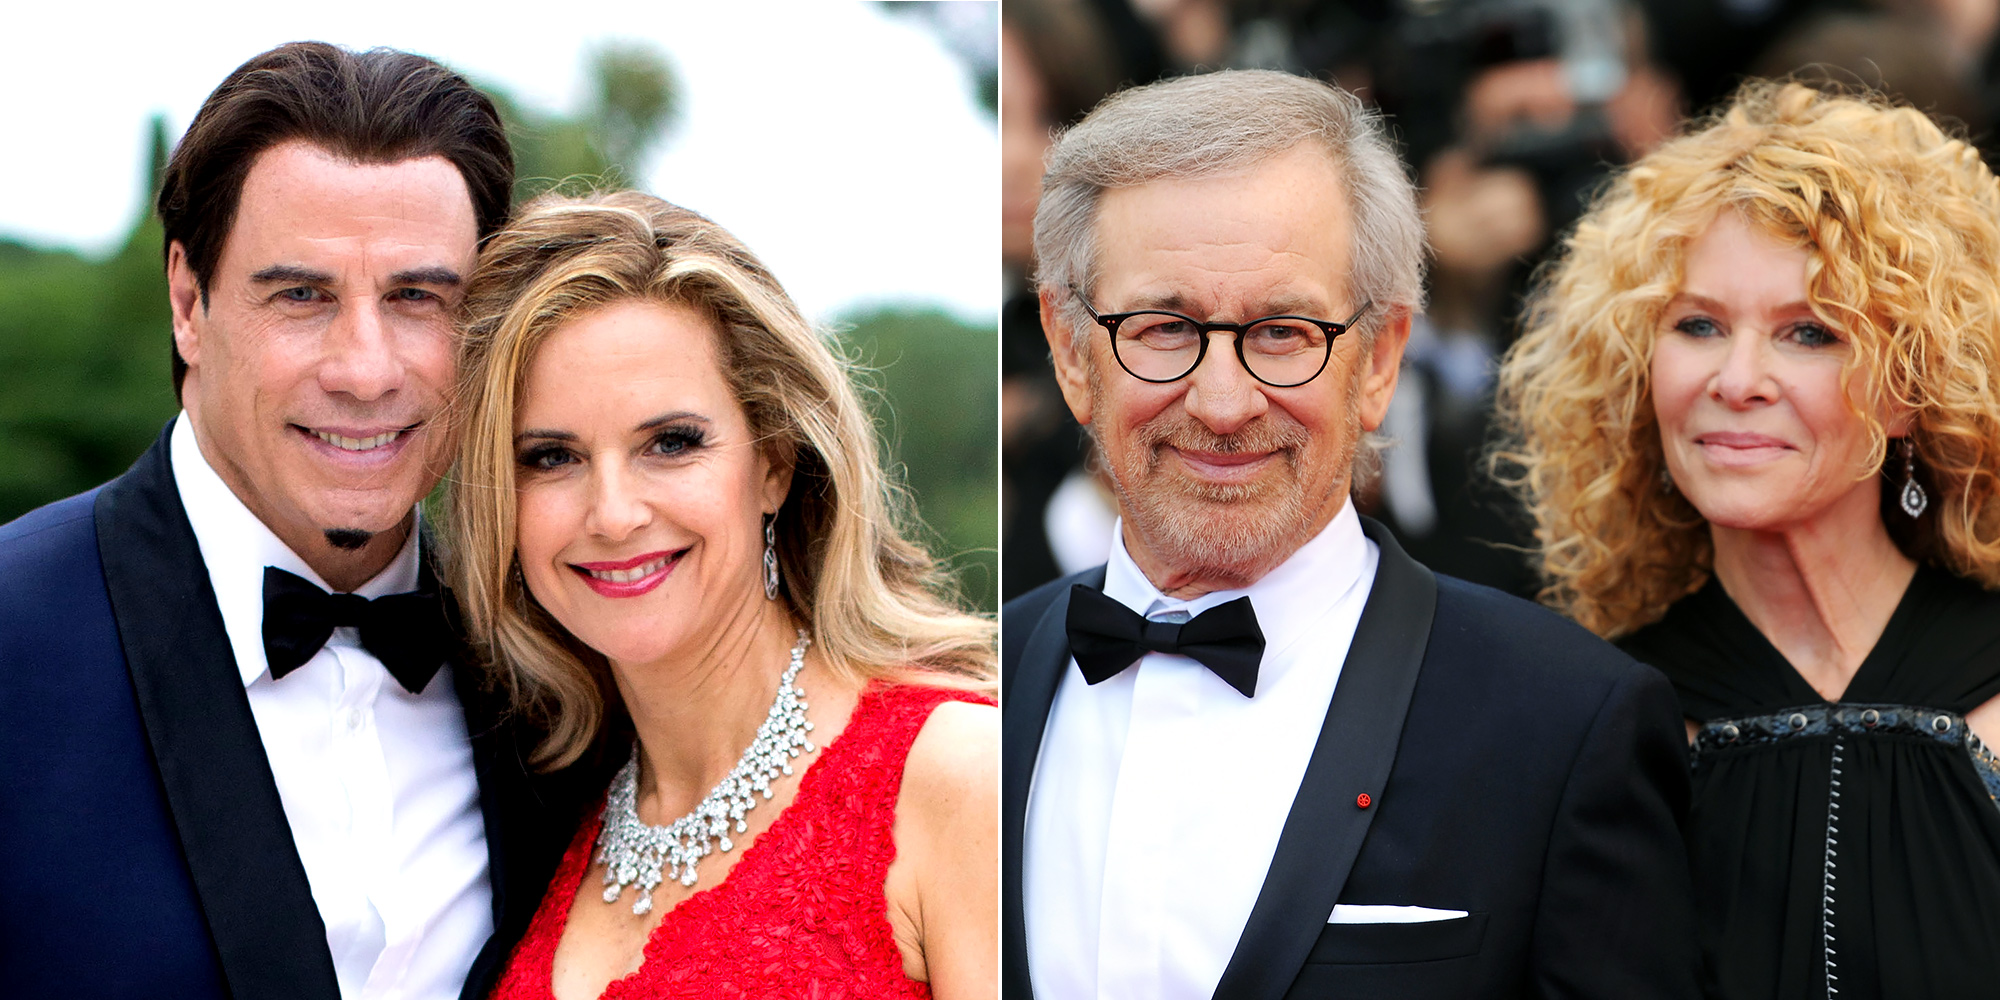 John Travolta and Kelly Preston, Steven Spielberg and Kate Capshaw celebrating wedding anniversaries in 2016